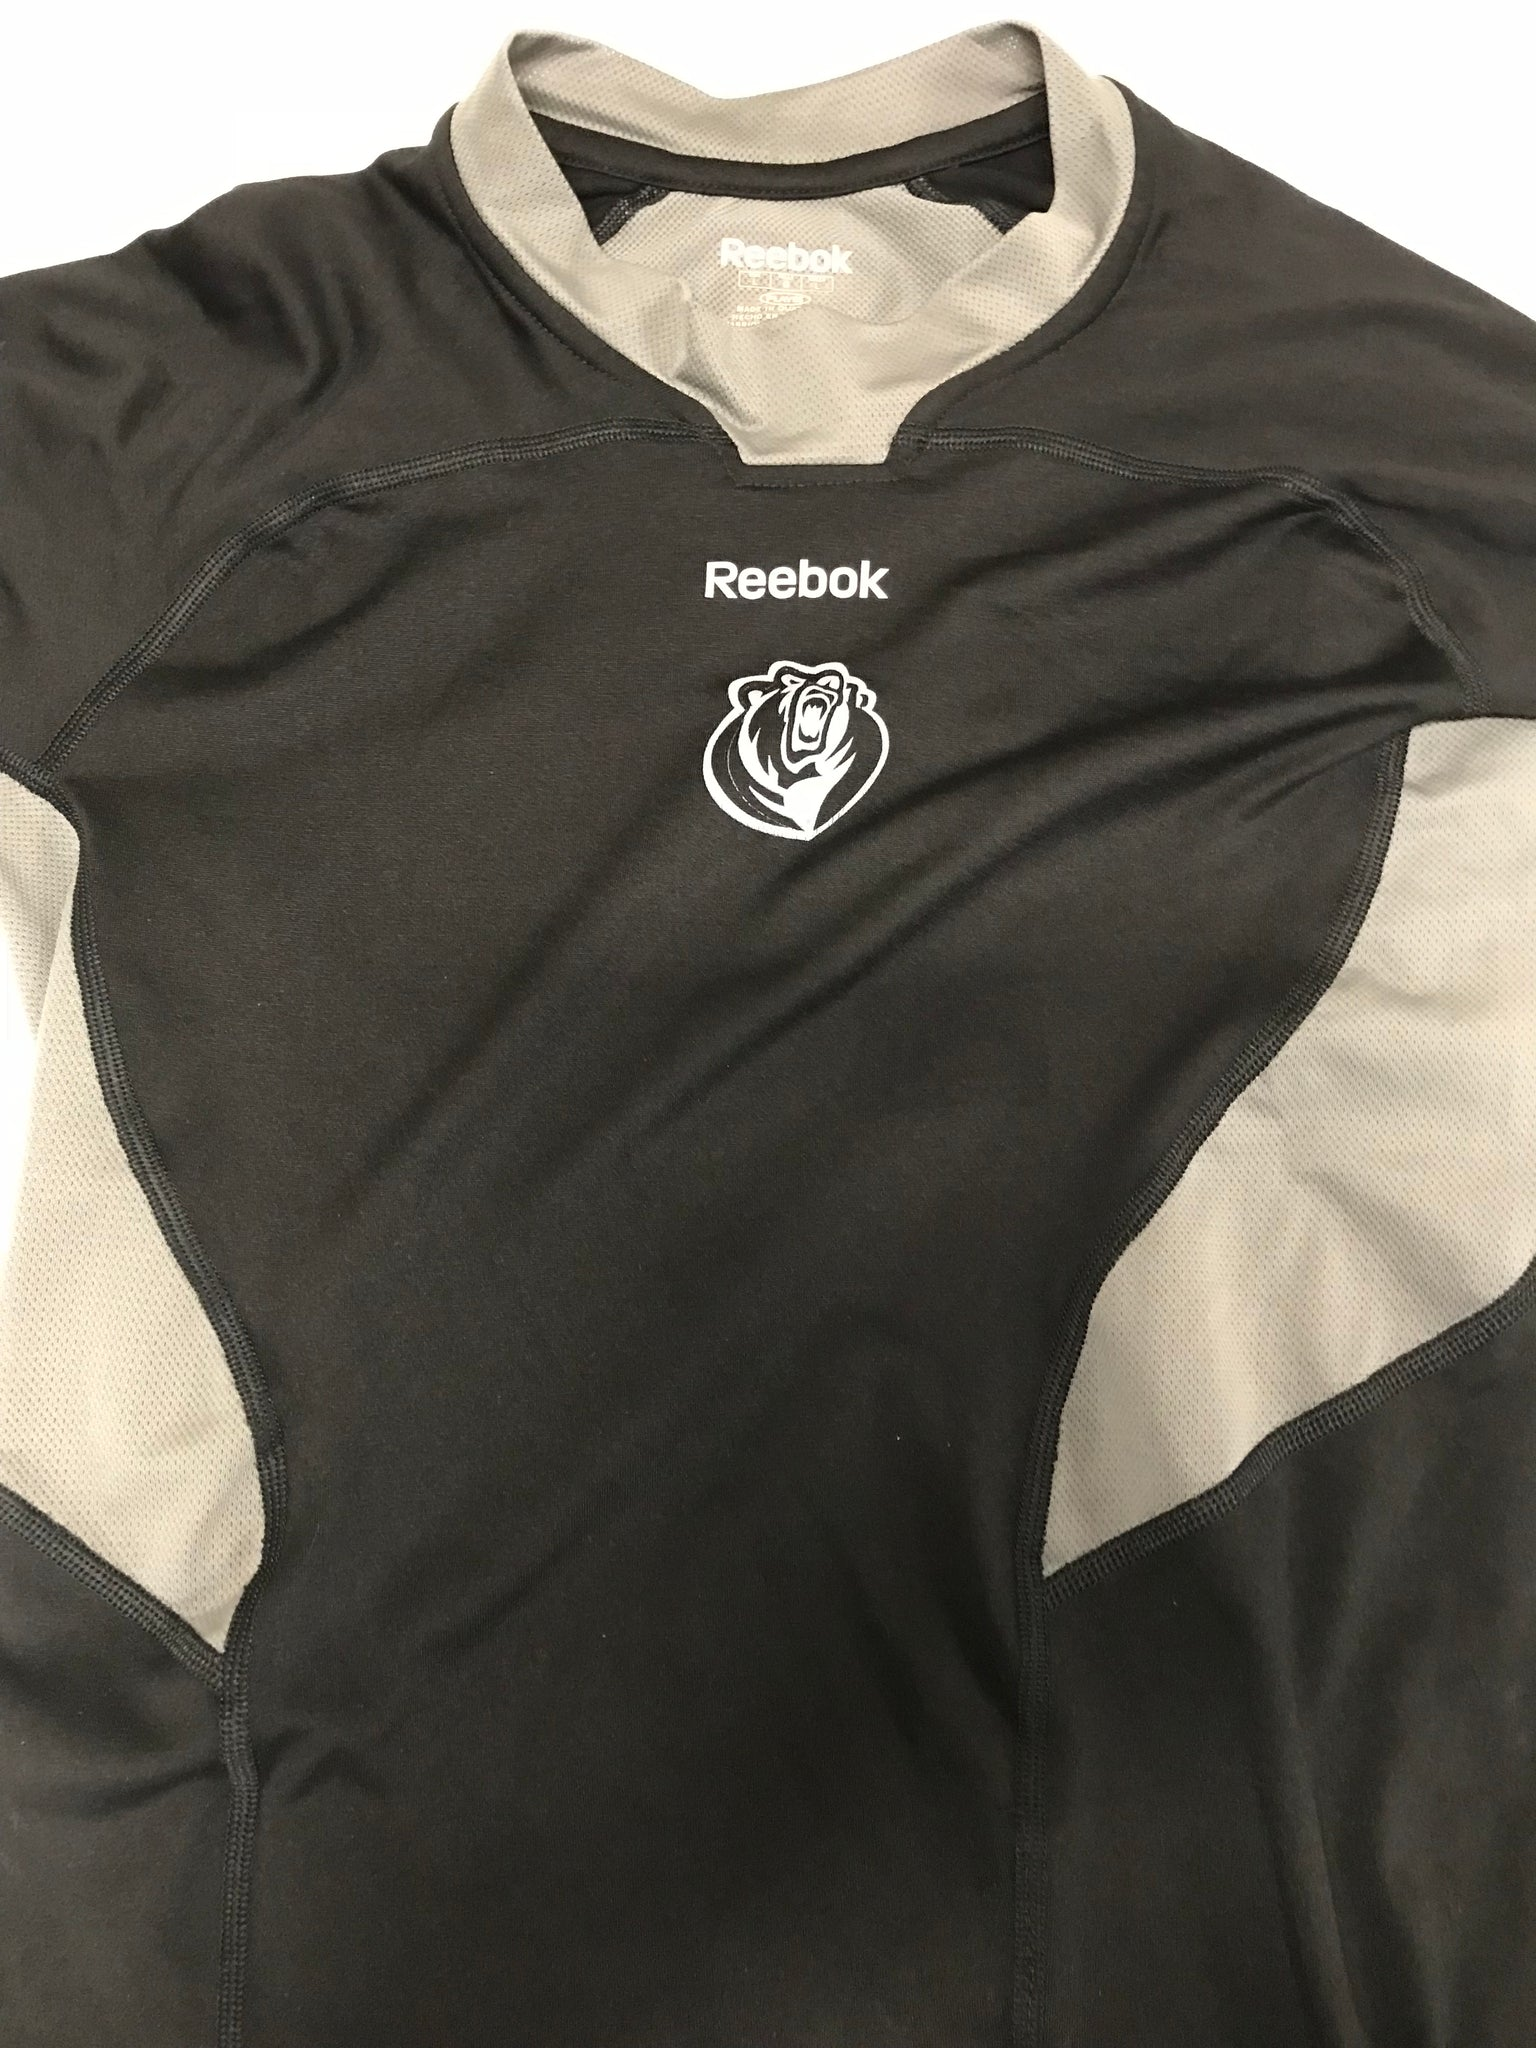 Reebok Owen Sound Attack Team Undershirt